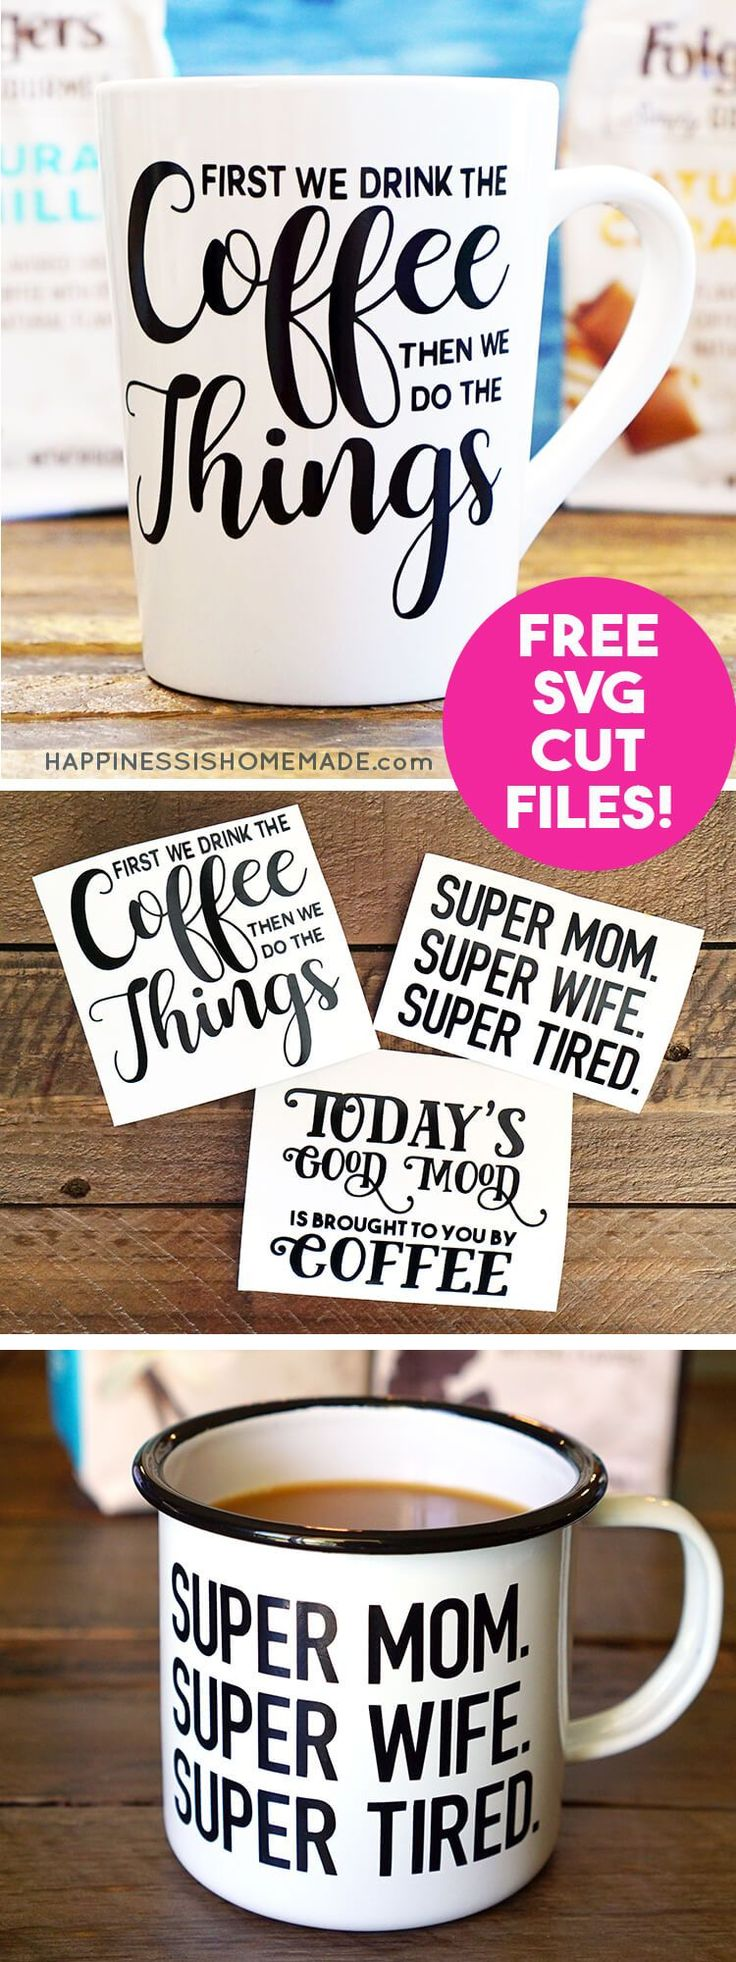 Personalized coffee mugs raleigh nc - Diy Funny Coffee Mugs Free Svg Cut Files